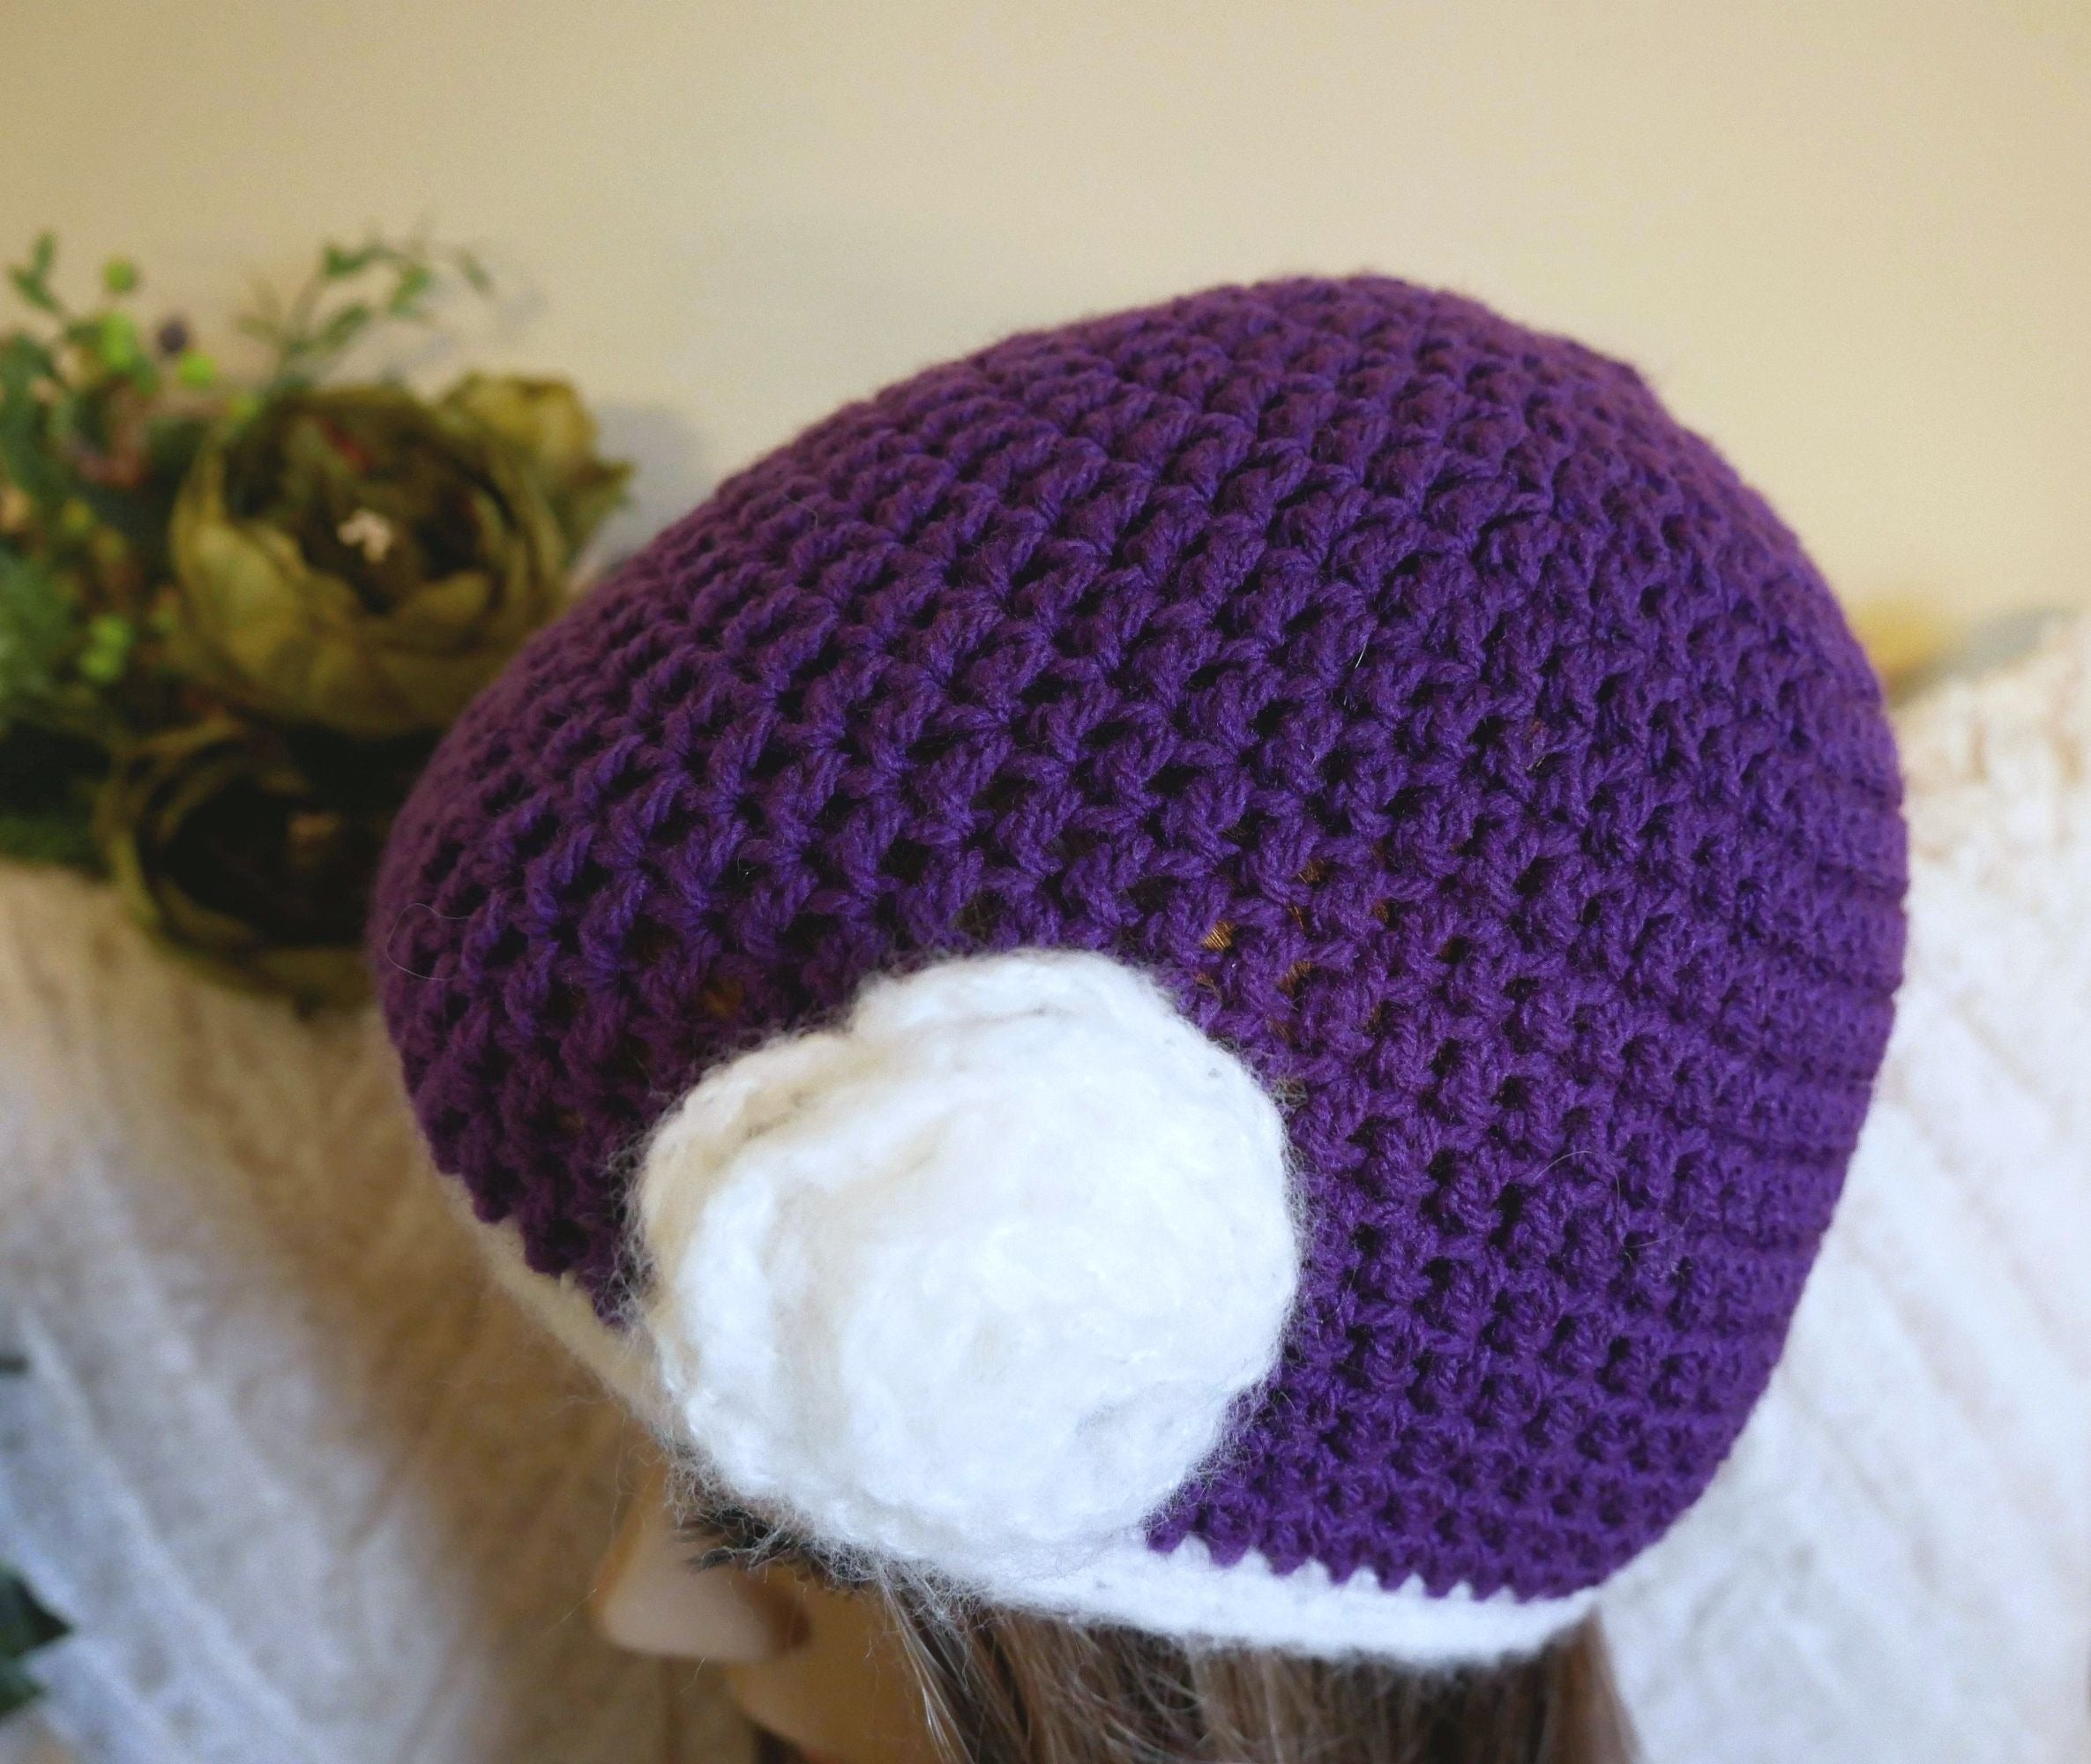 Crochet-Hat-With-Flower-Nchanted-Gifts